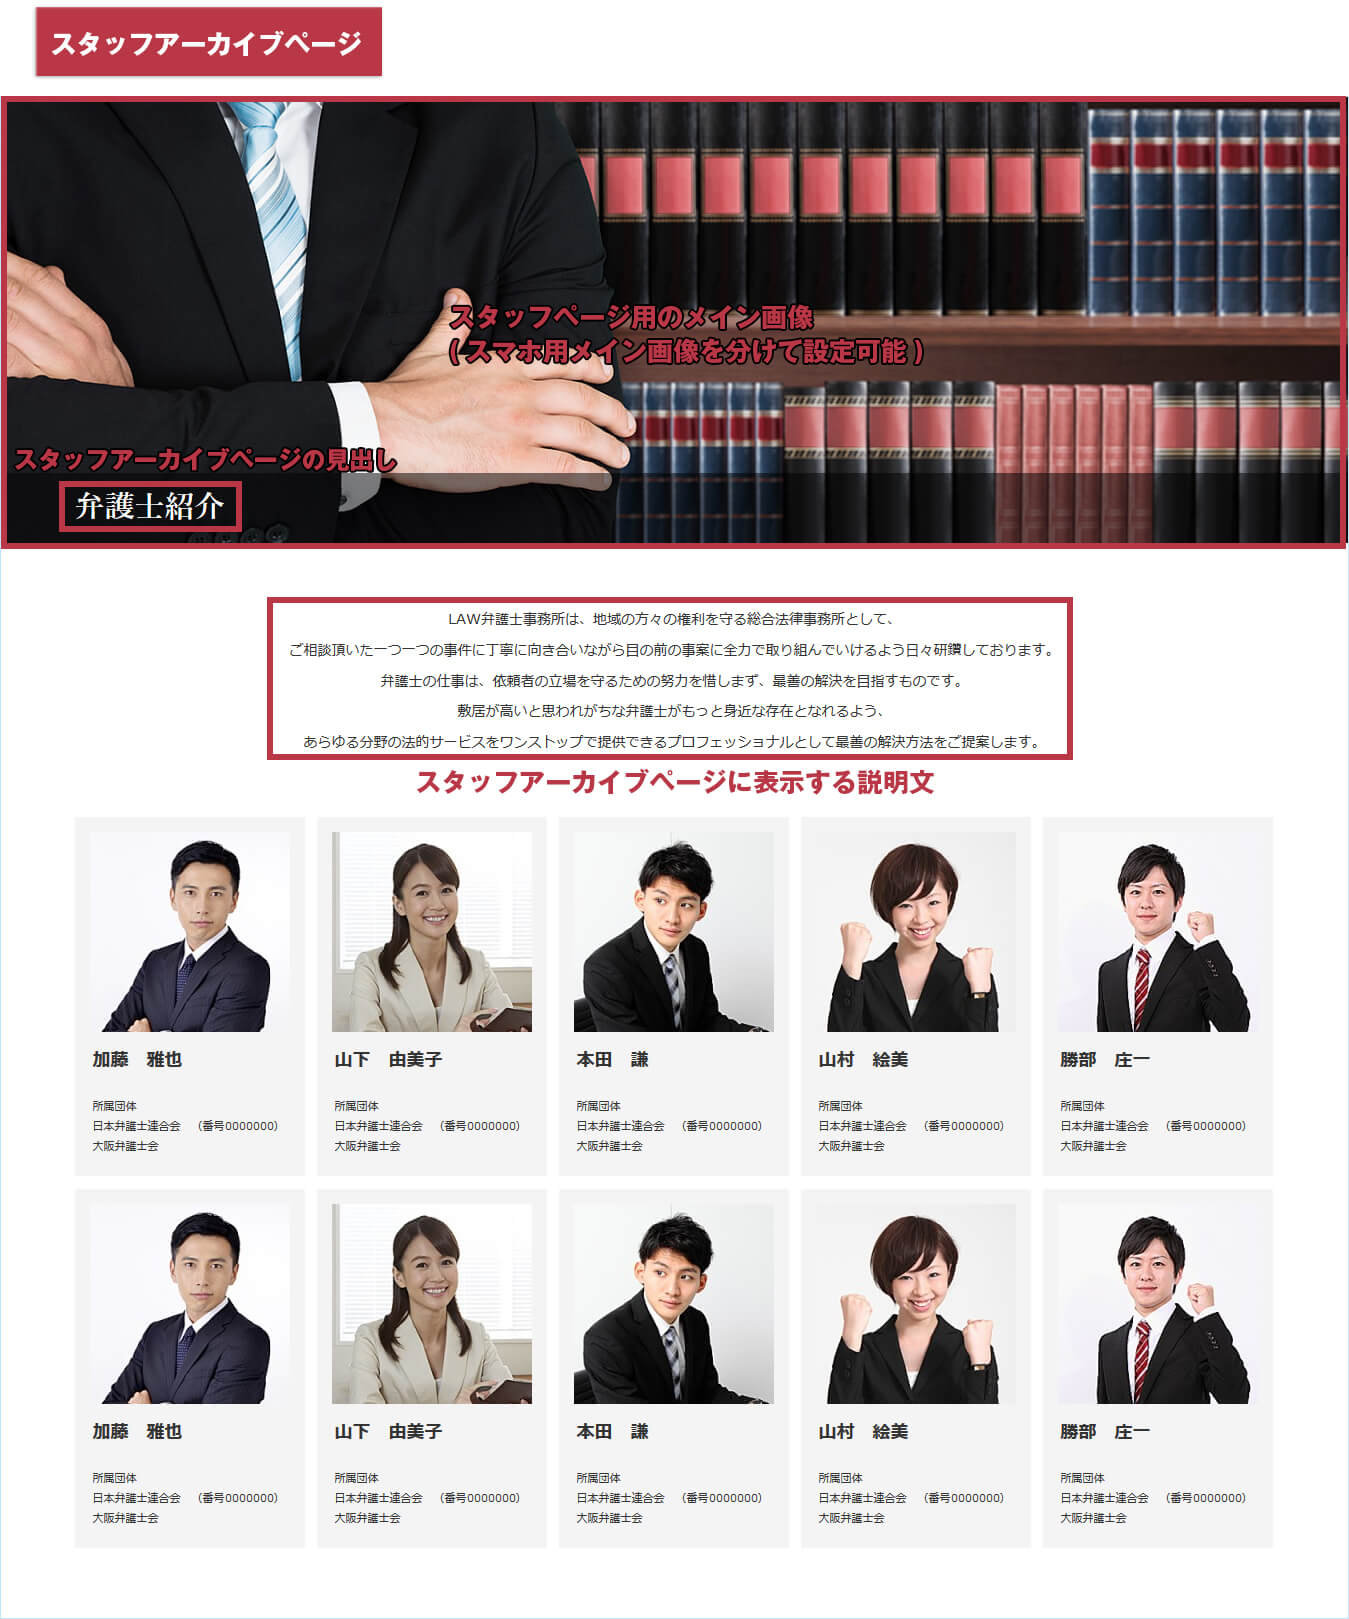 law-staff-archive